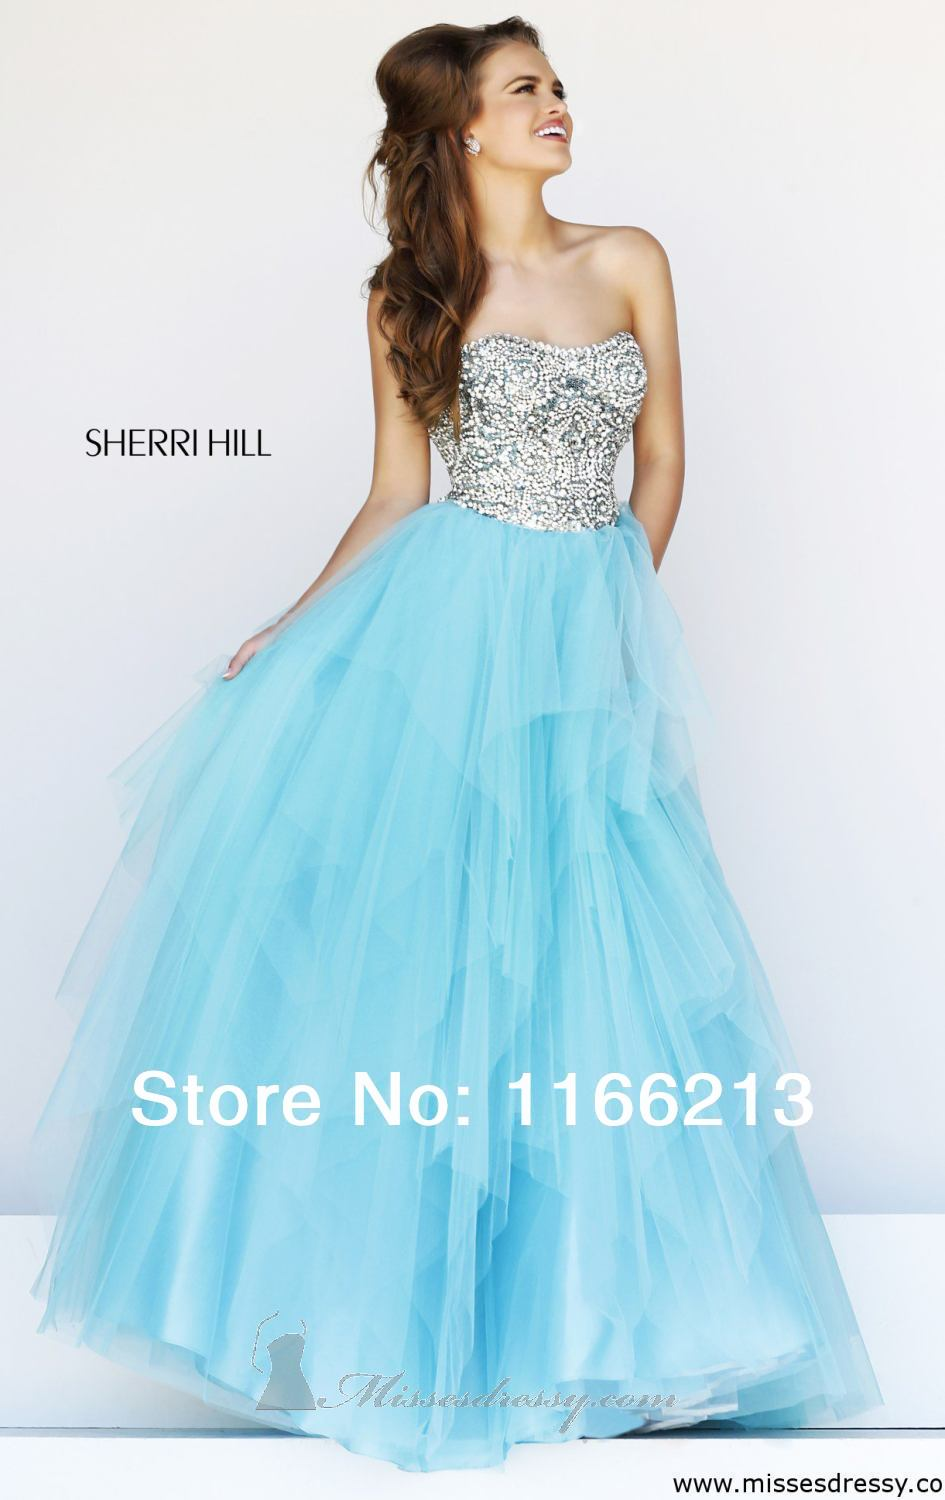 Pretty Prom Dress Websites Uk Pictures Inspiration - Wedding Ideas ...